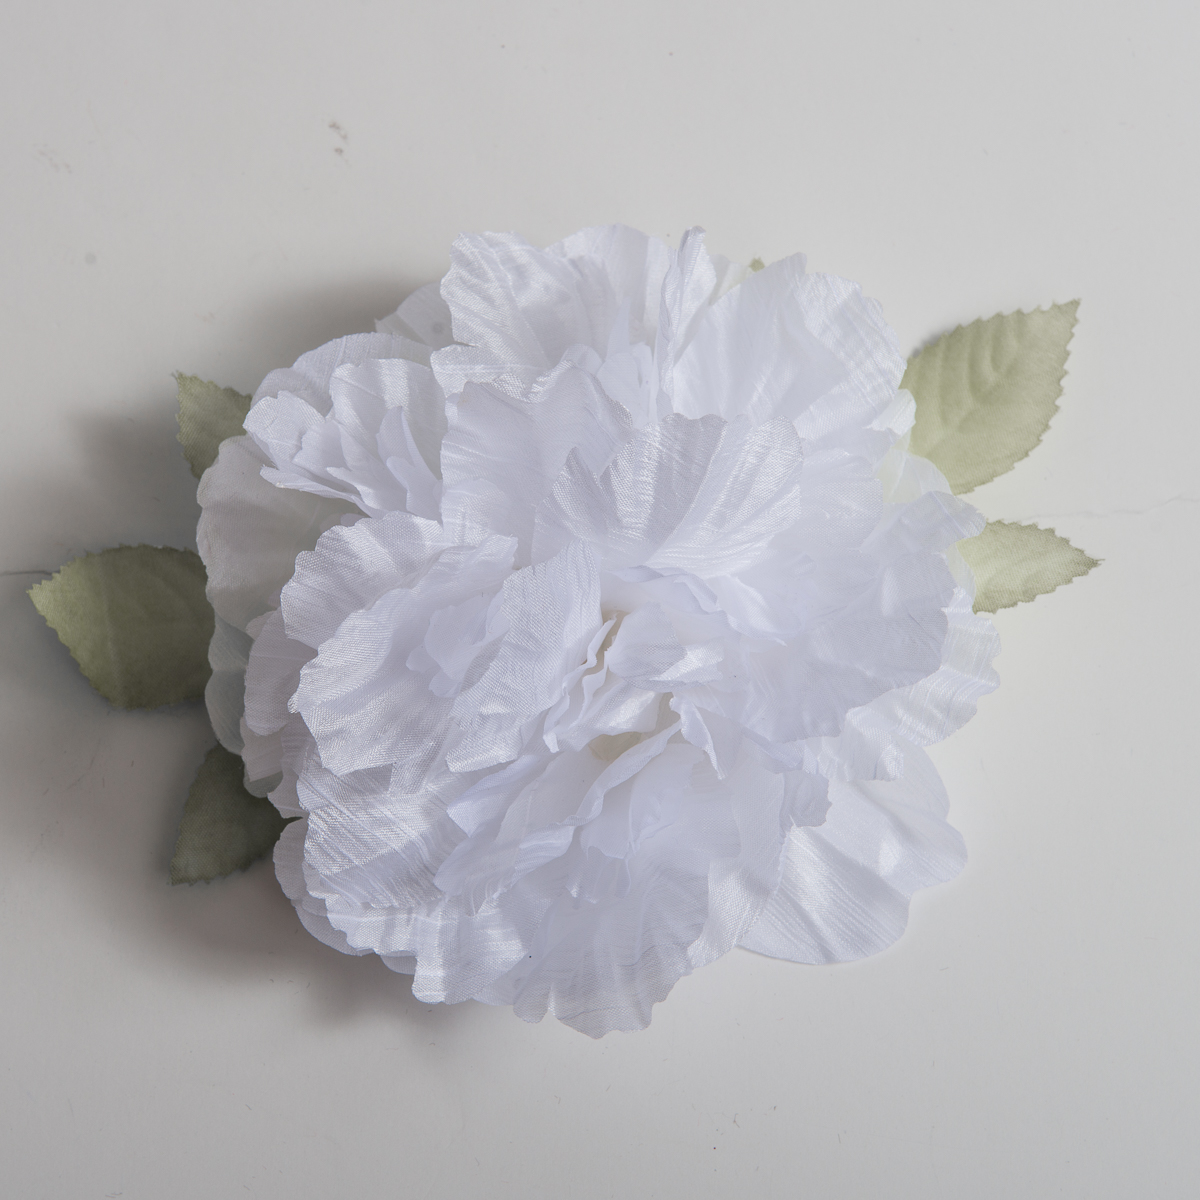 White Silk Peony Flower Heads With Leaves 802015 01 Sun Yorkos Zoria